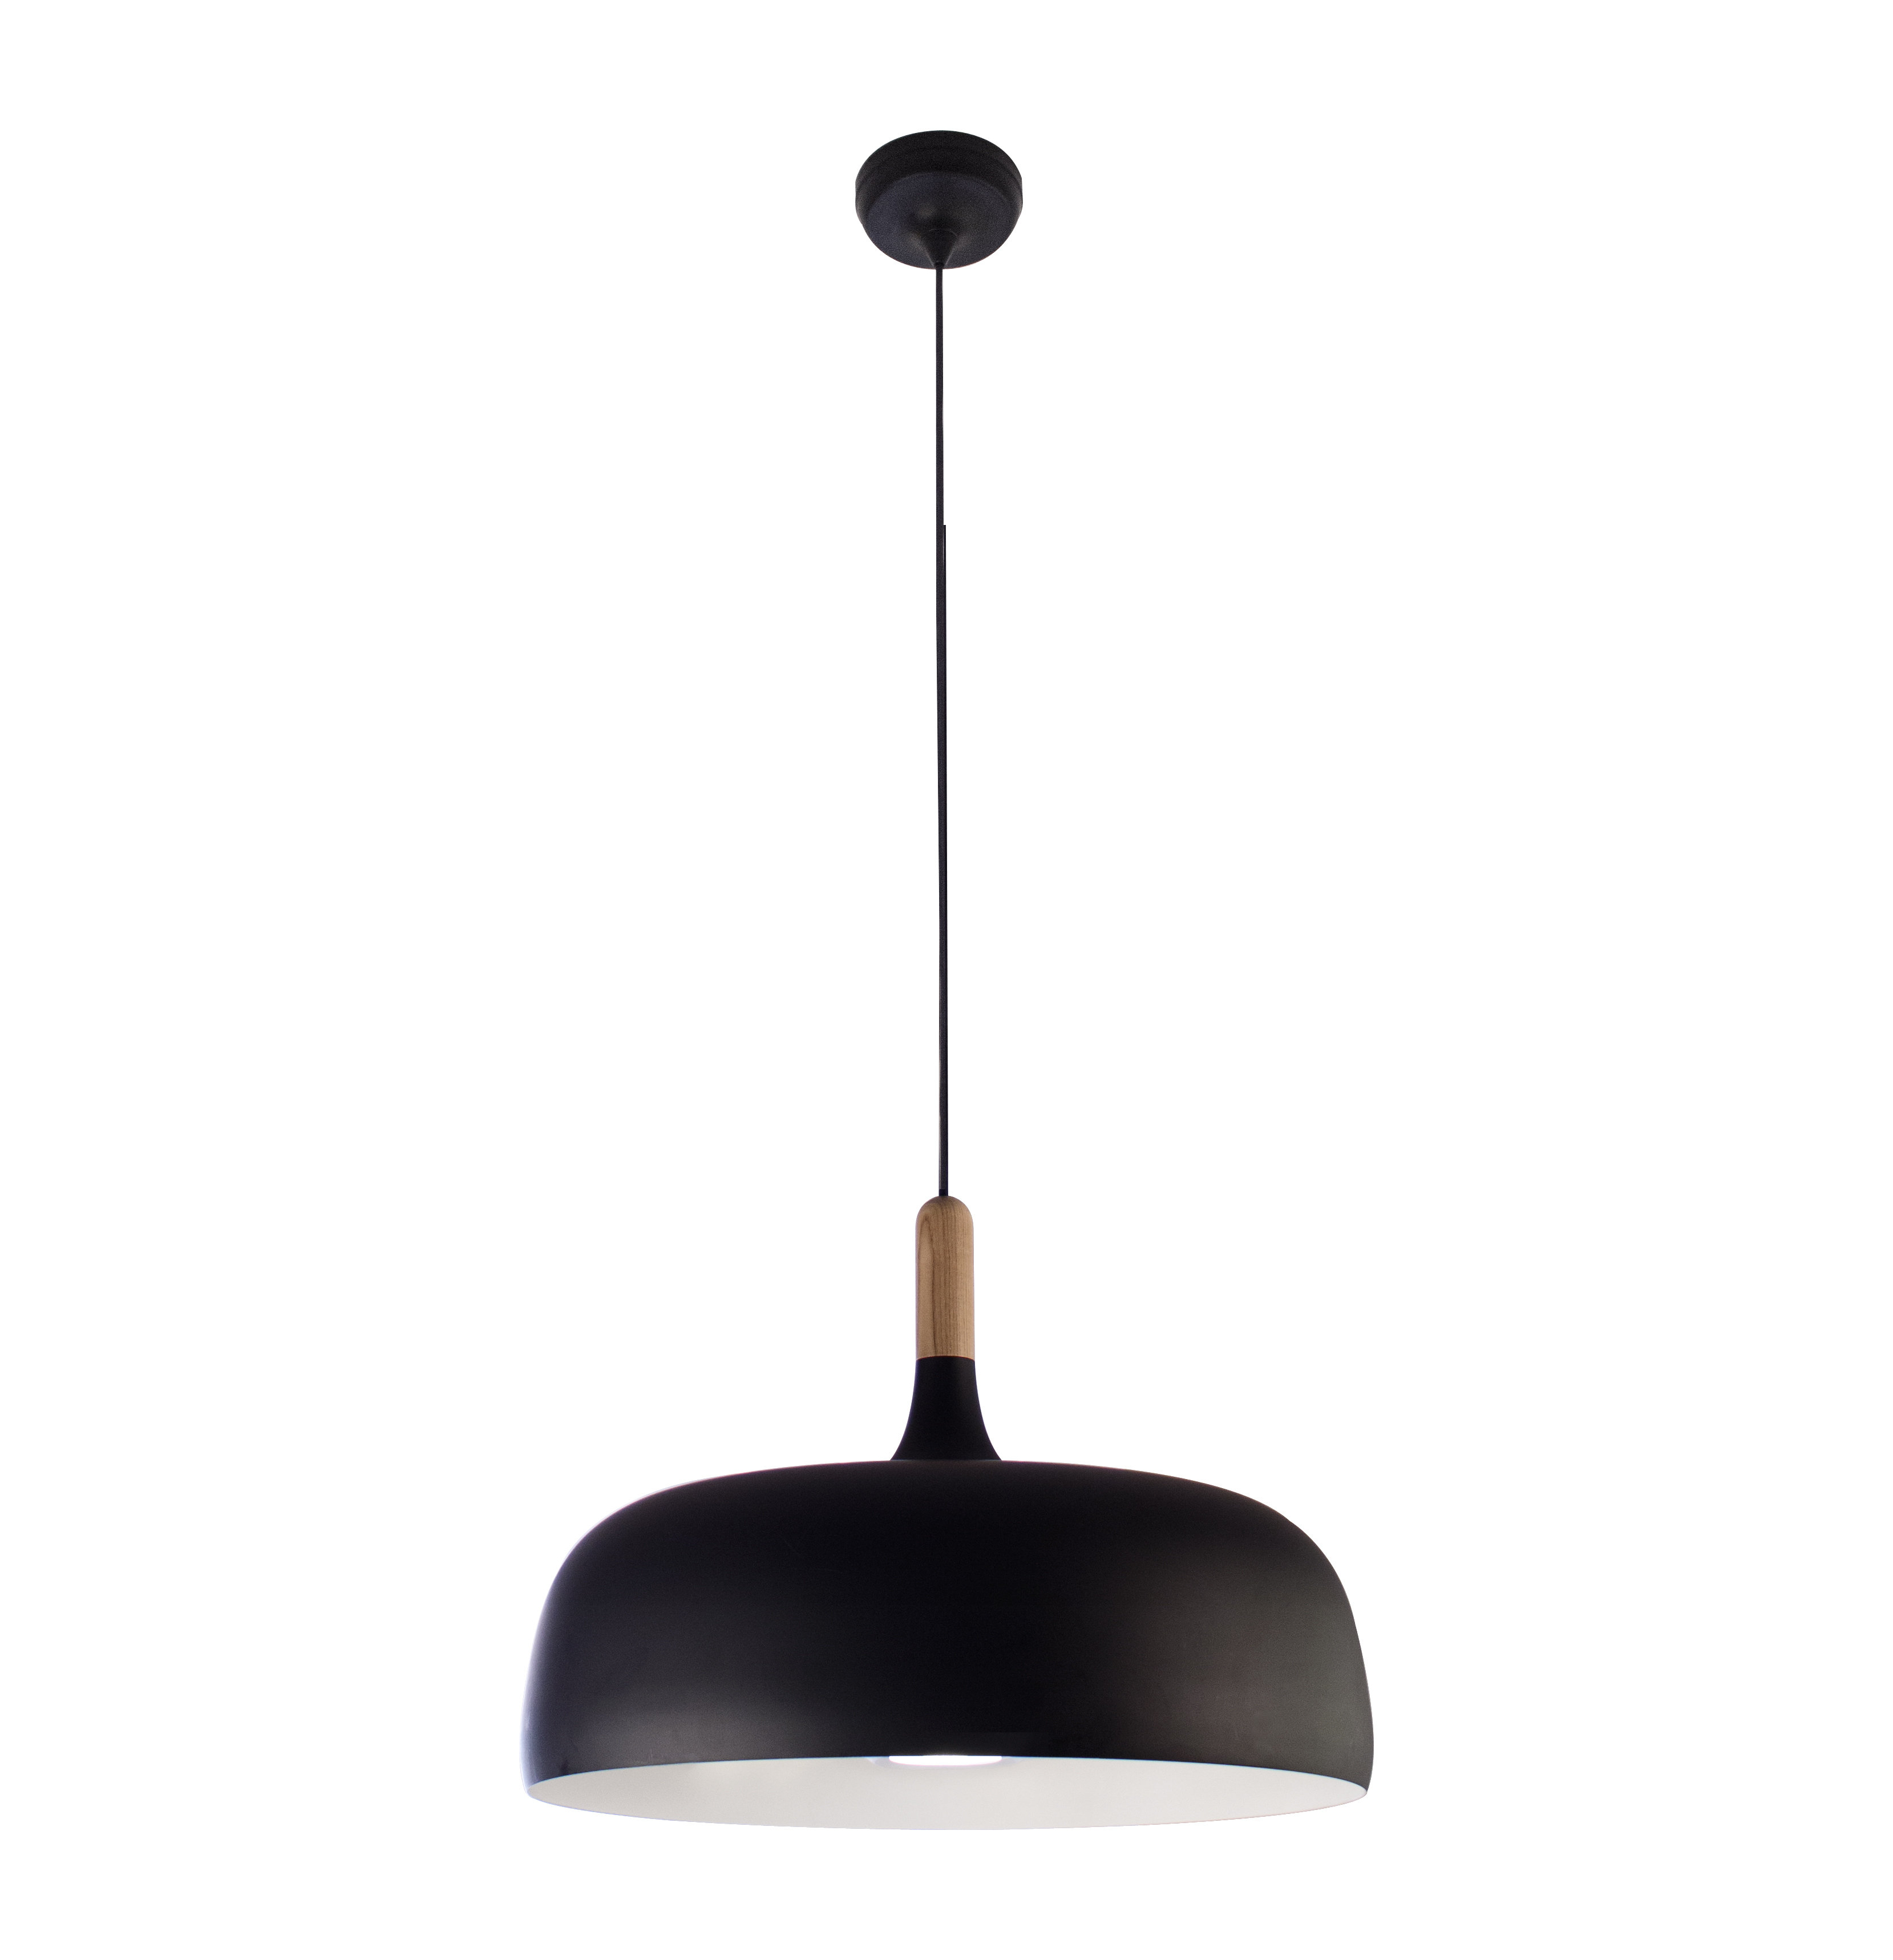 Most Recent Ryker 1 Light Single Dome Pendant Regarding Ryker 1 Light Single Dome Pendants (Gallery 1 of 20)